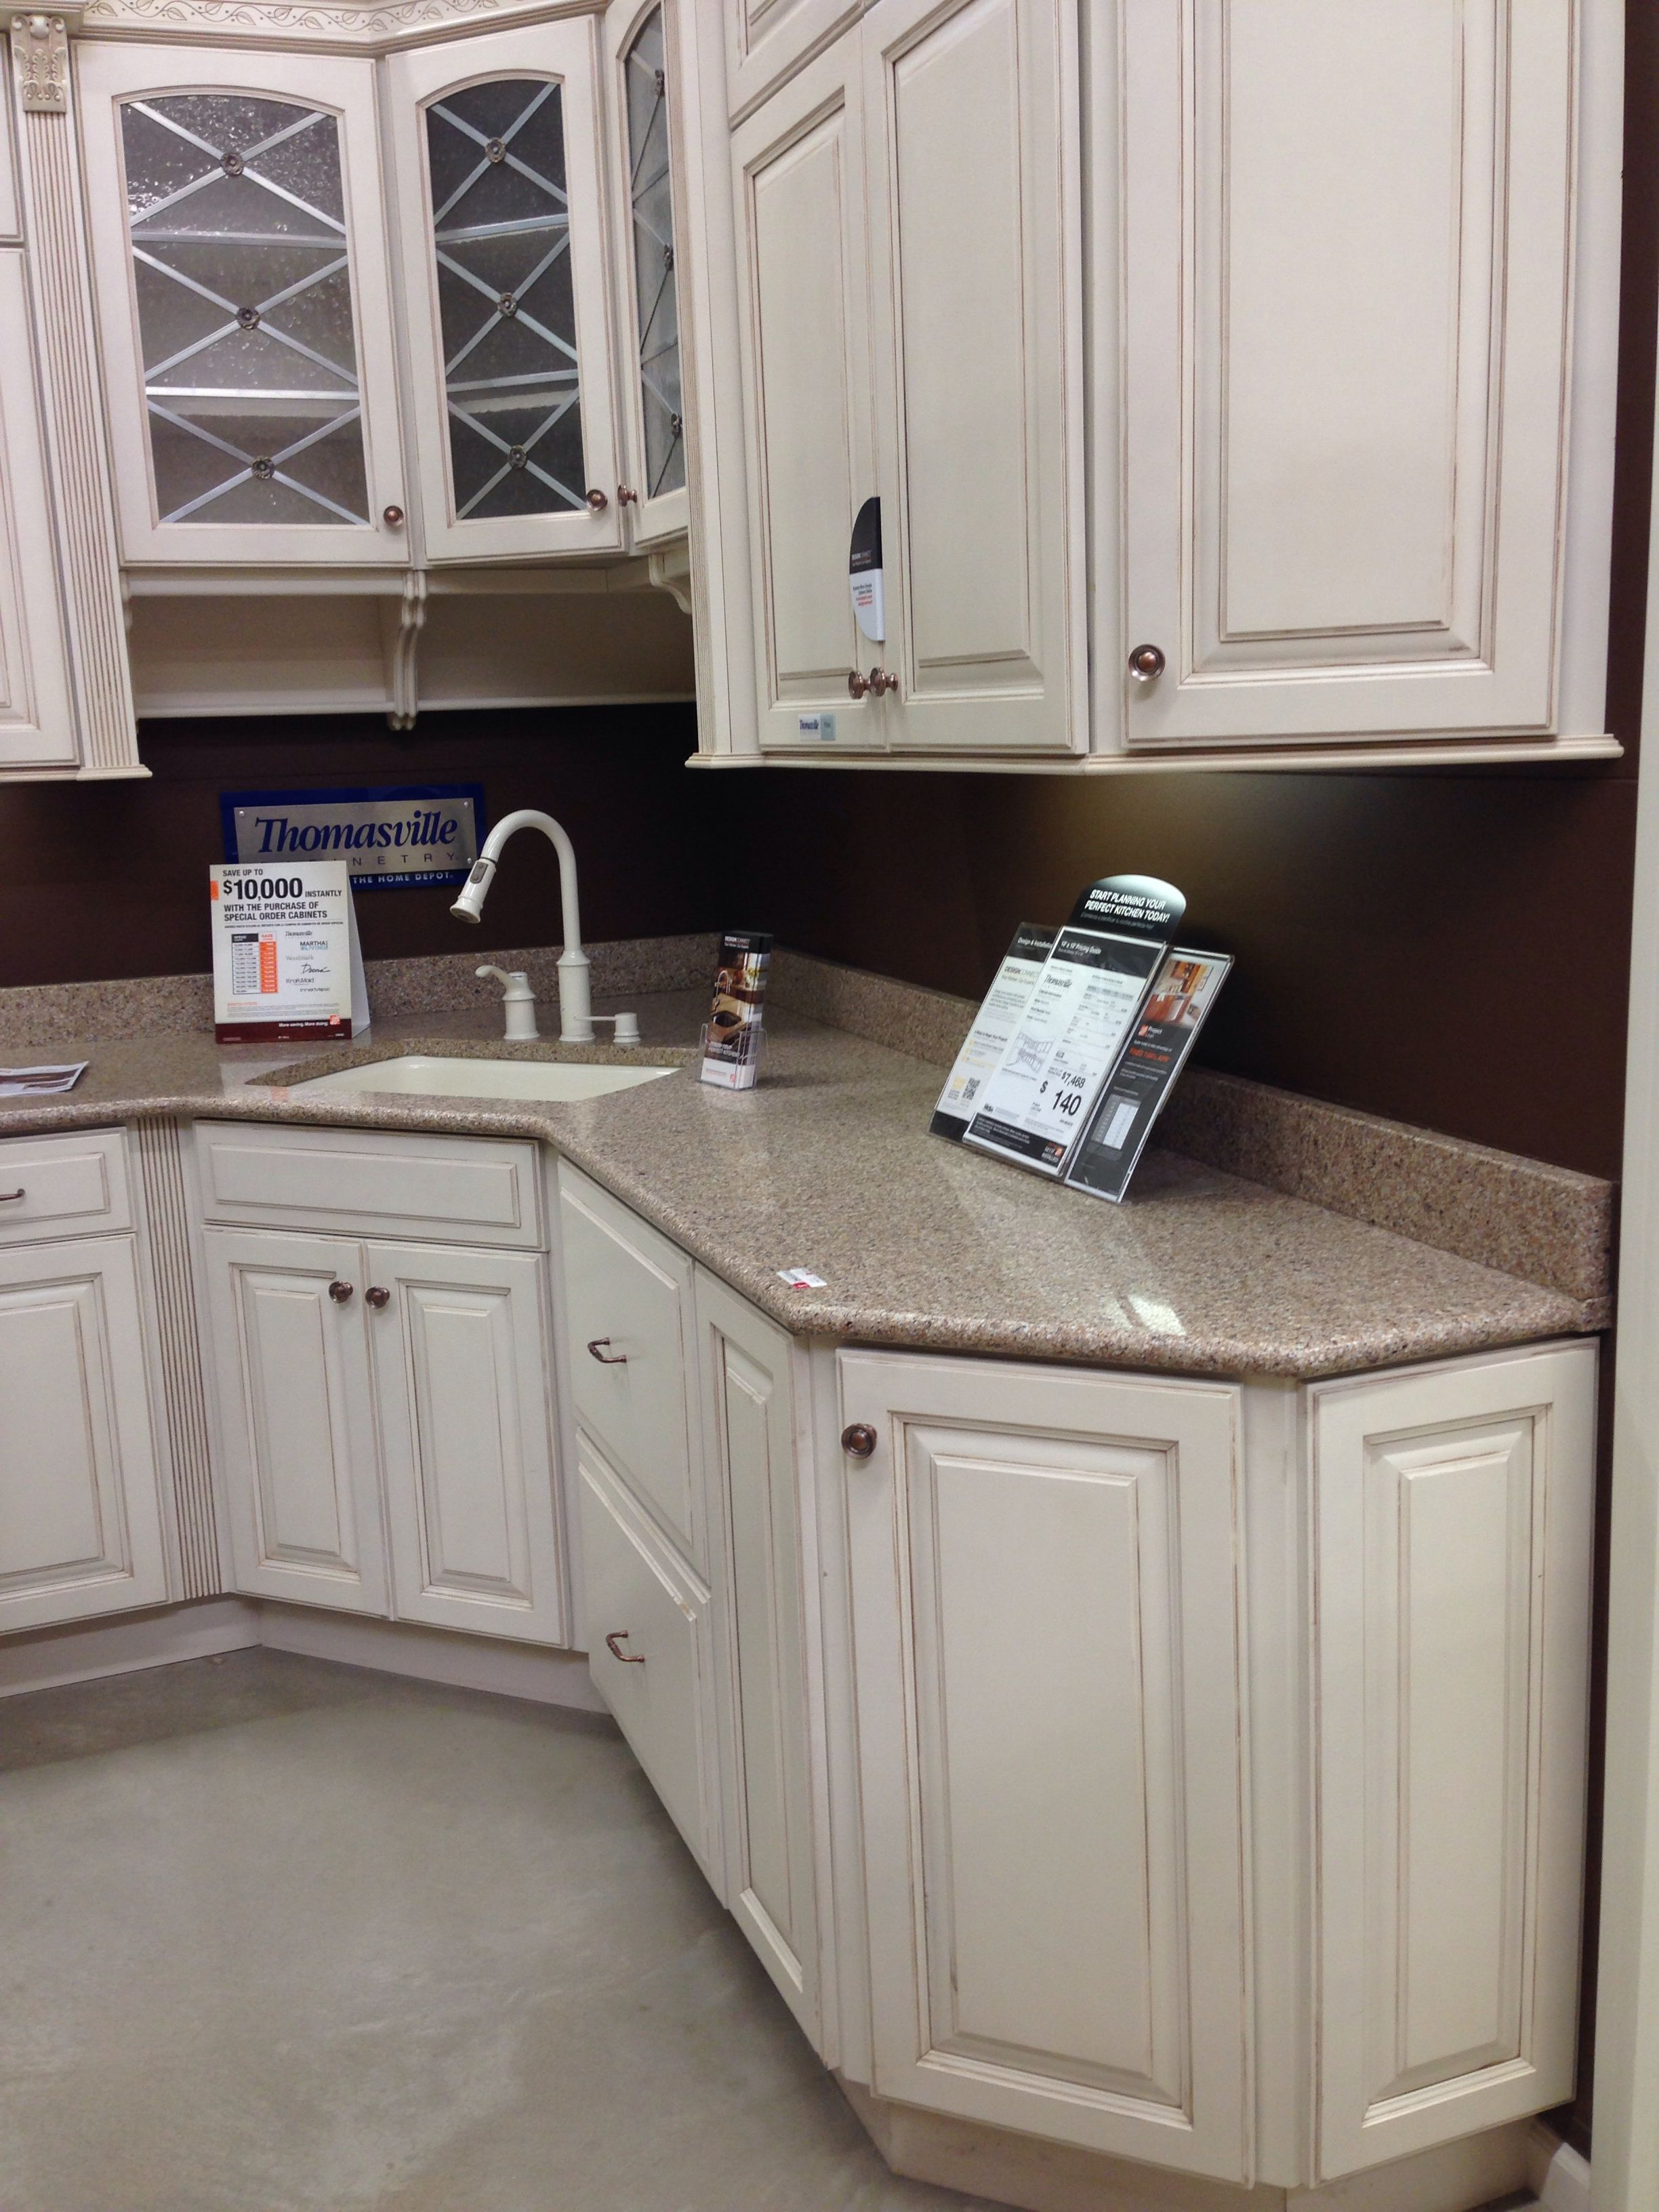 backsplash kitchen ideas plaza maple cabinet with kona beige silestone countertop 1428